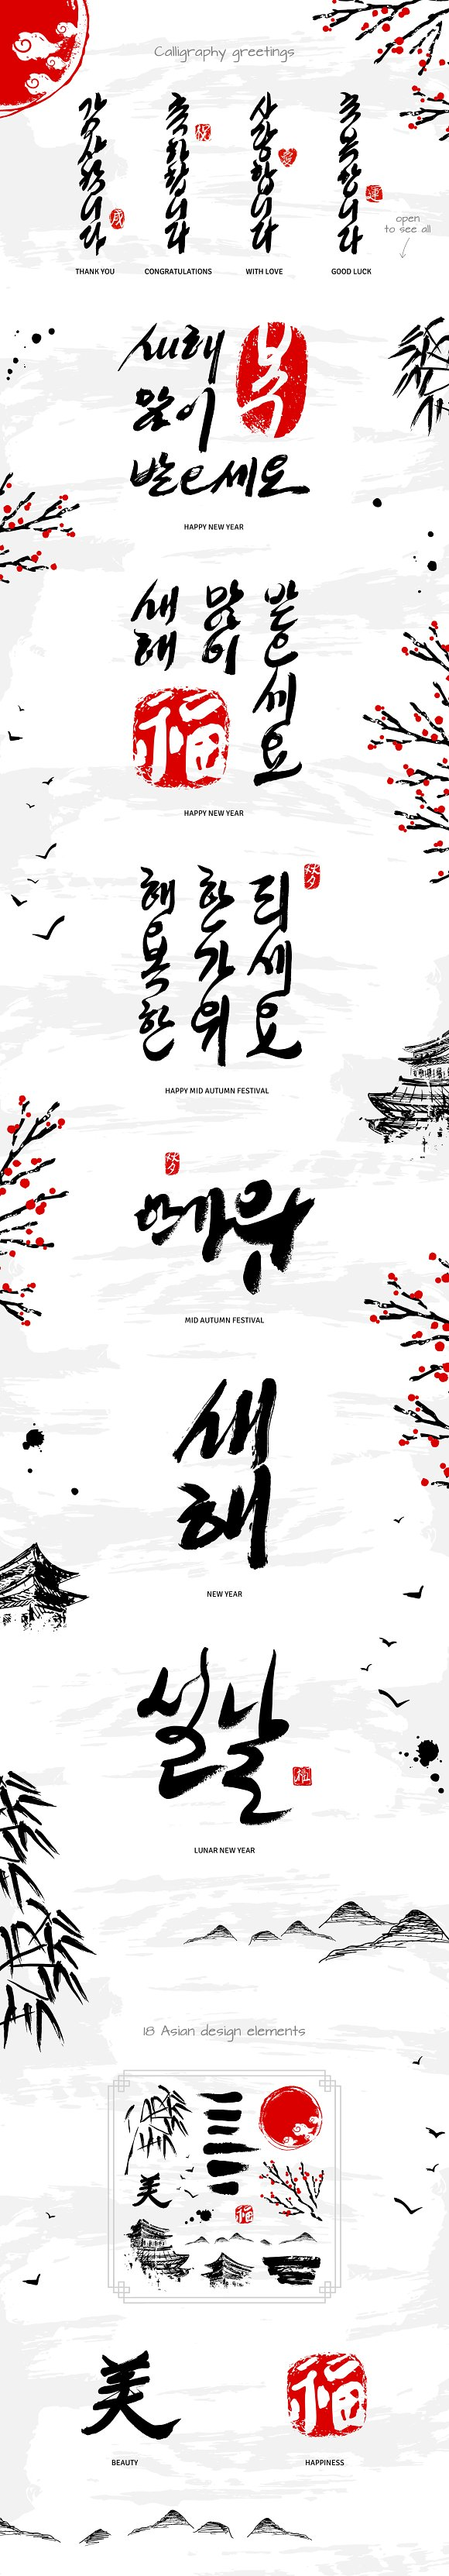 Korean calligraphy set illustrations creative market m4hsunfo